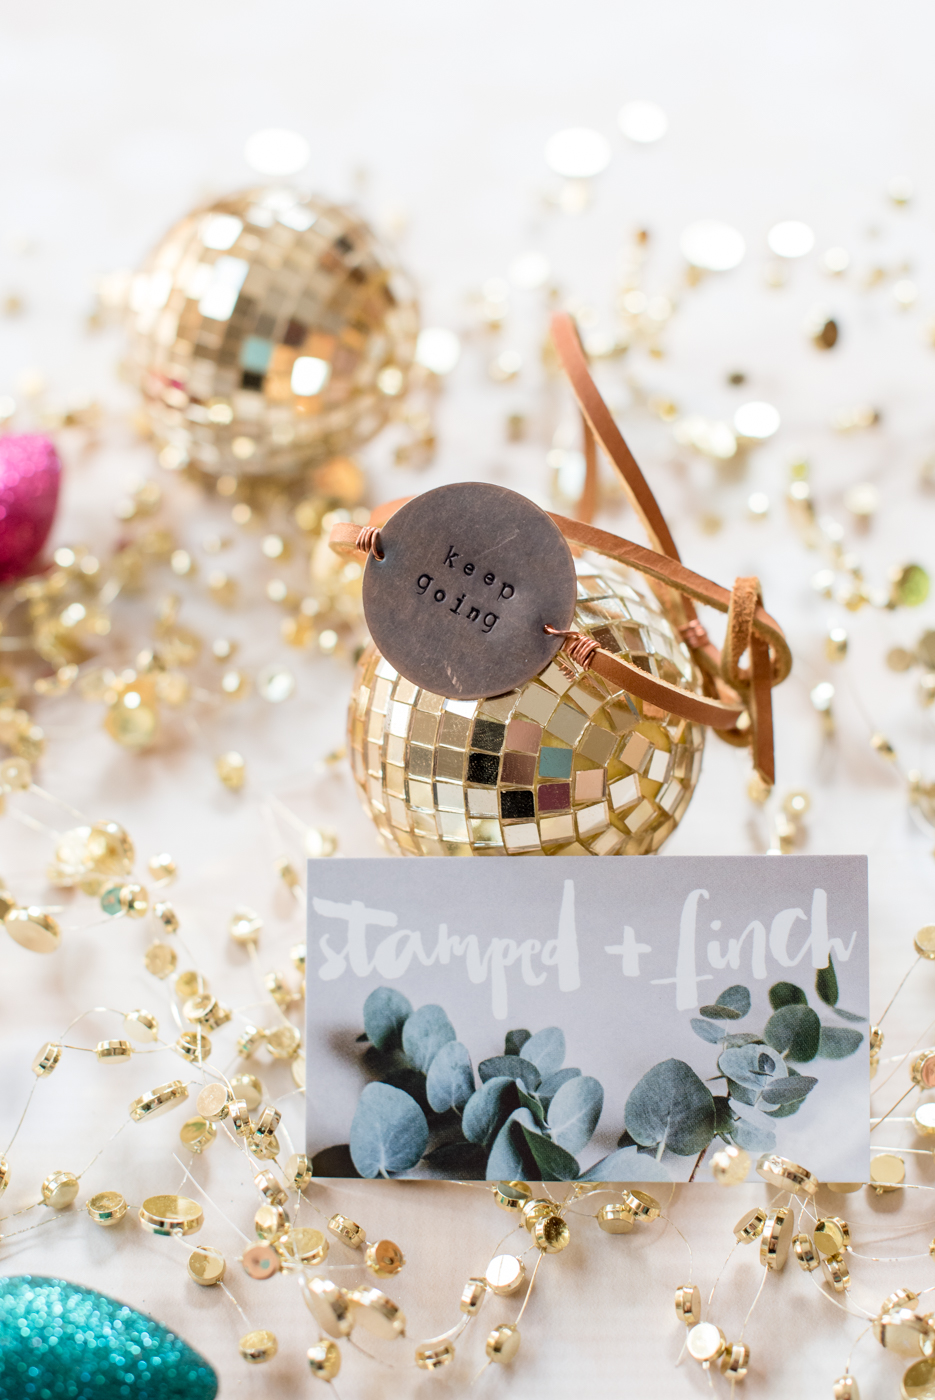 Stamped & Finch | Shop Local Holiday Gift Guide | Athens, GA | @missmollymoon